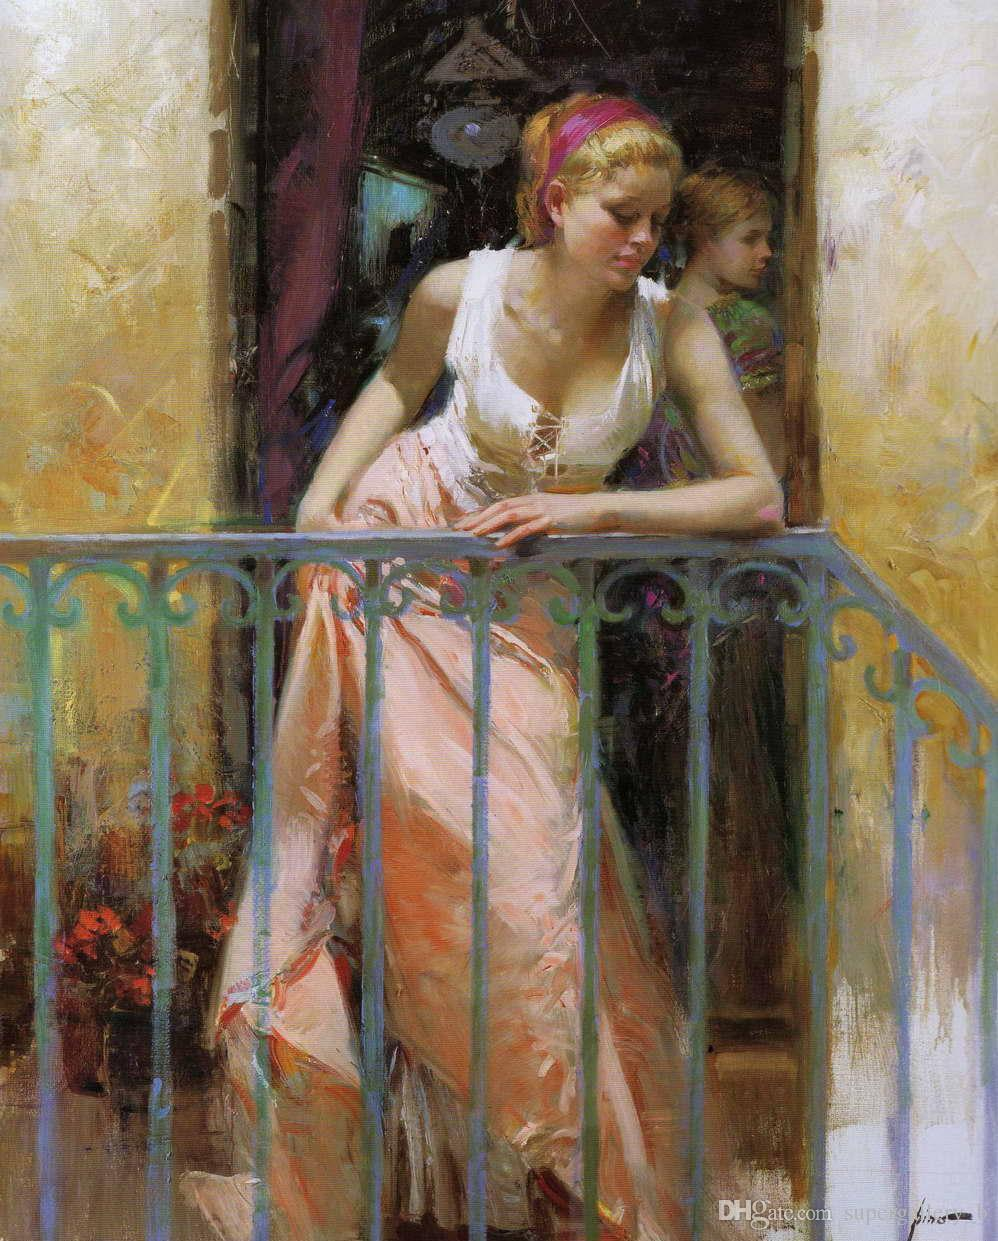 The Balcony woman by Pino Daeni,Handpainted Famous Impressionism Art Oil Painting On High Quality Canvas sizes can customized Free Shipping